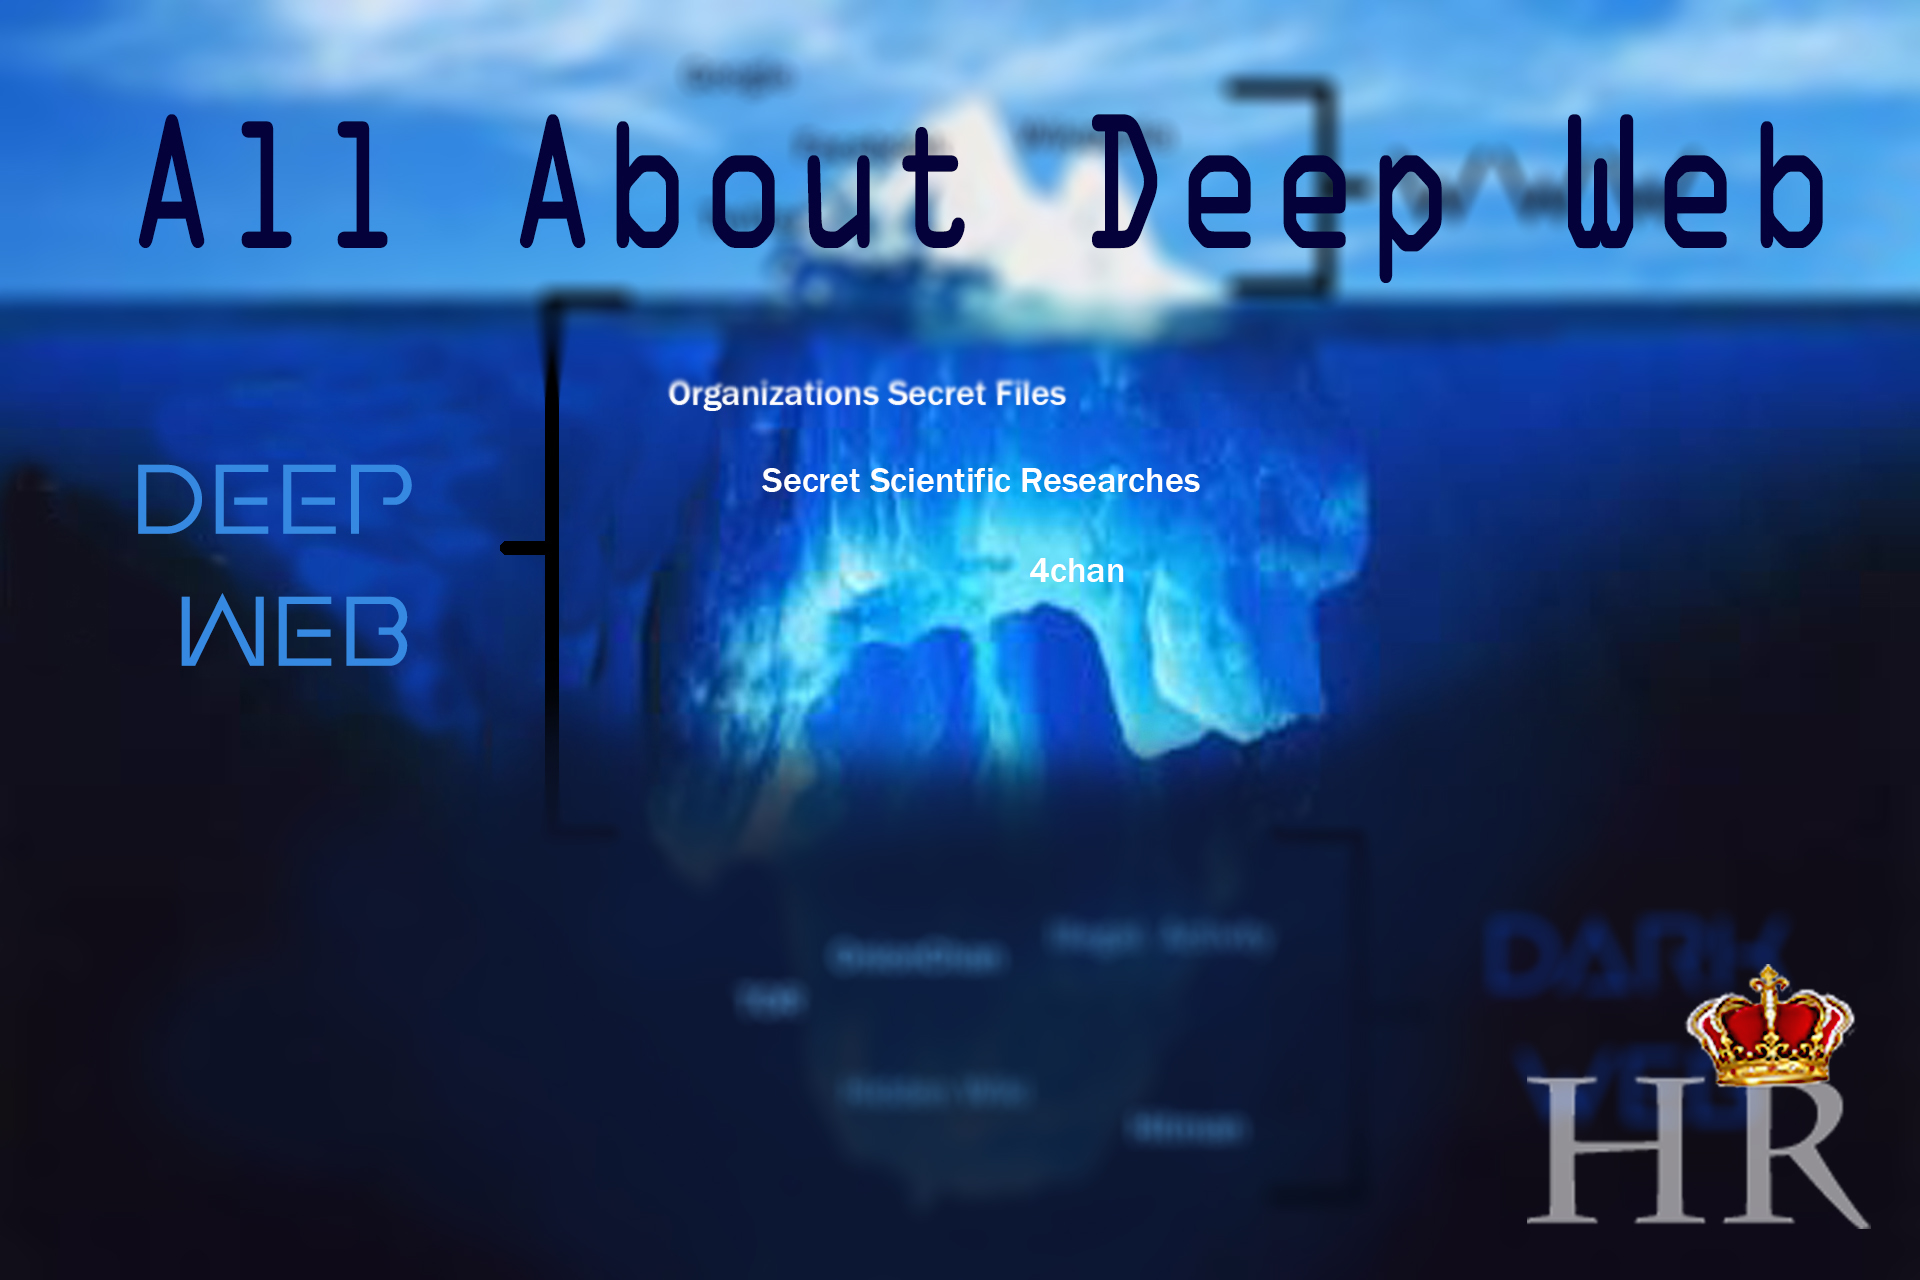 How To Access The Deep Web All About The Deep Web: Pros & Cons